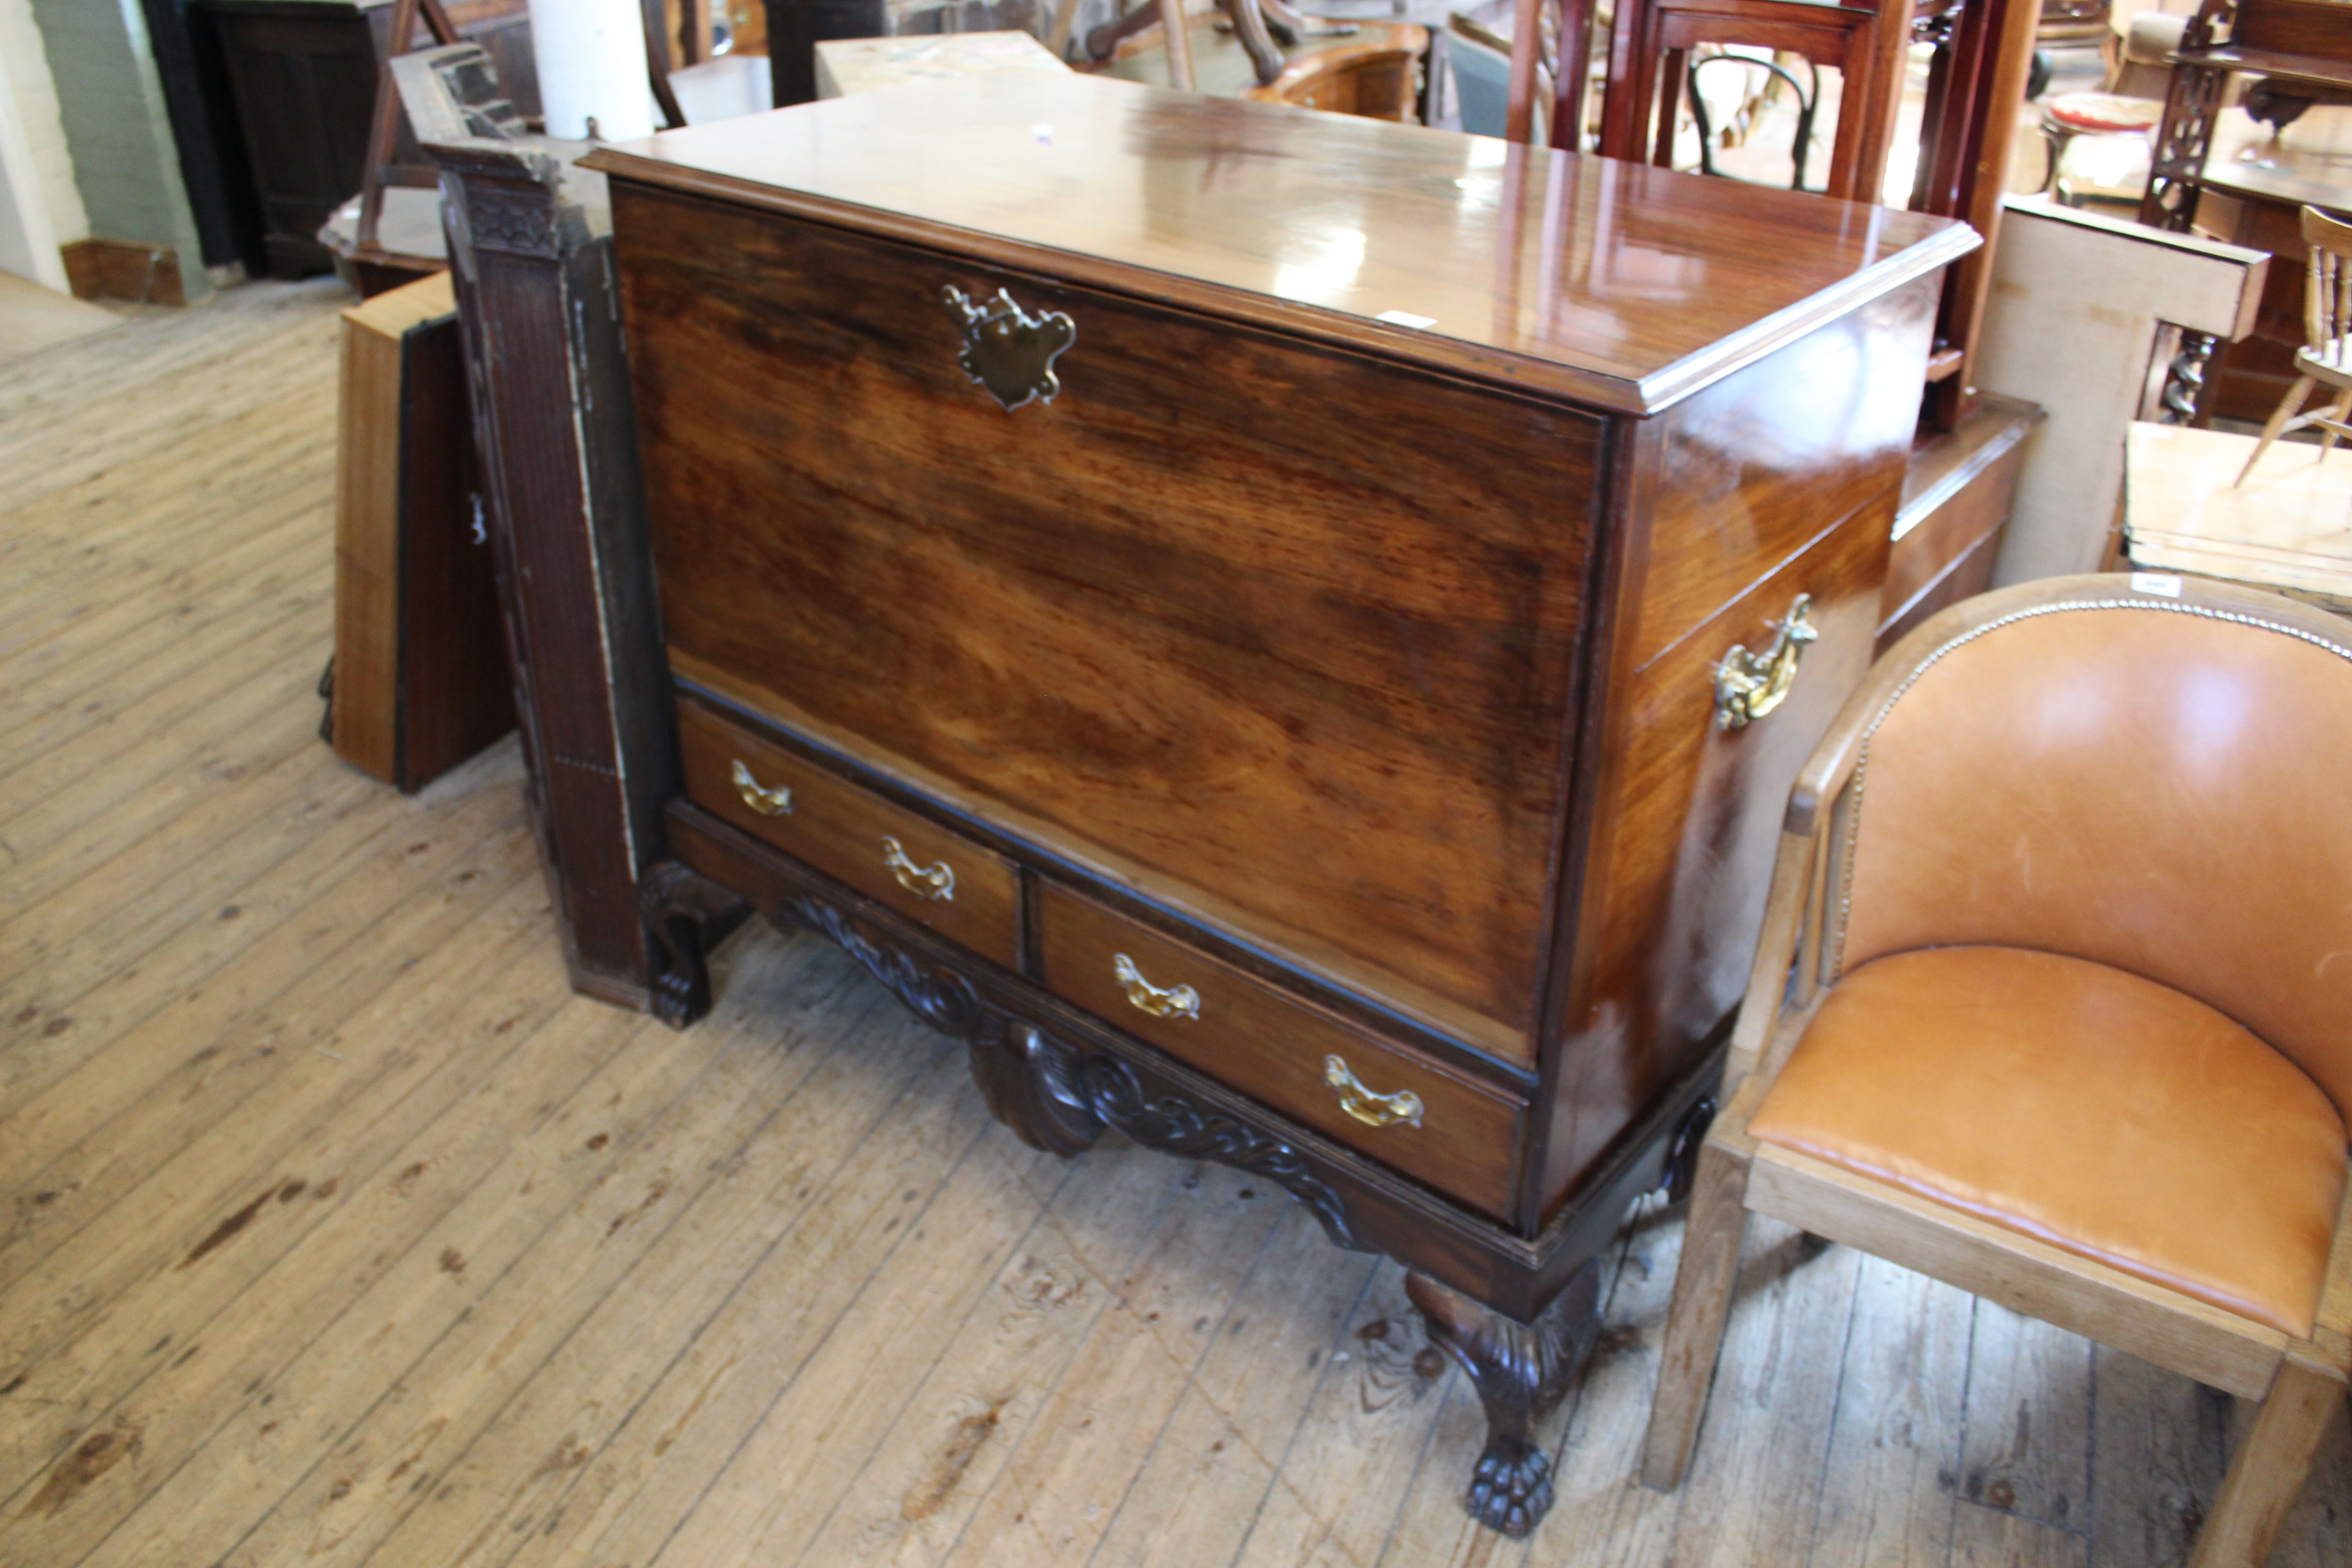 A mid 18th Century mahogany mule chest on cabriole leg stand (now converted to hifi cabinet)